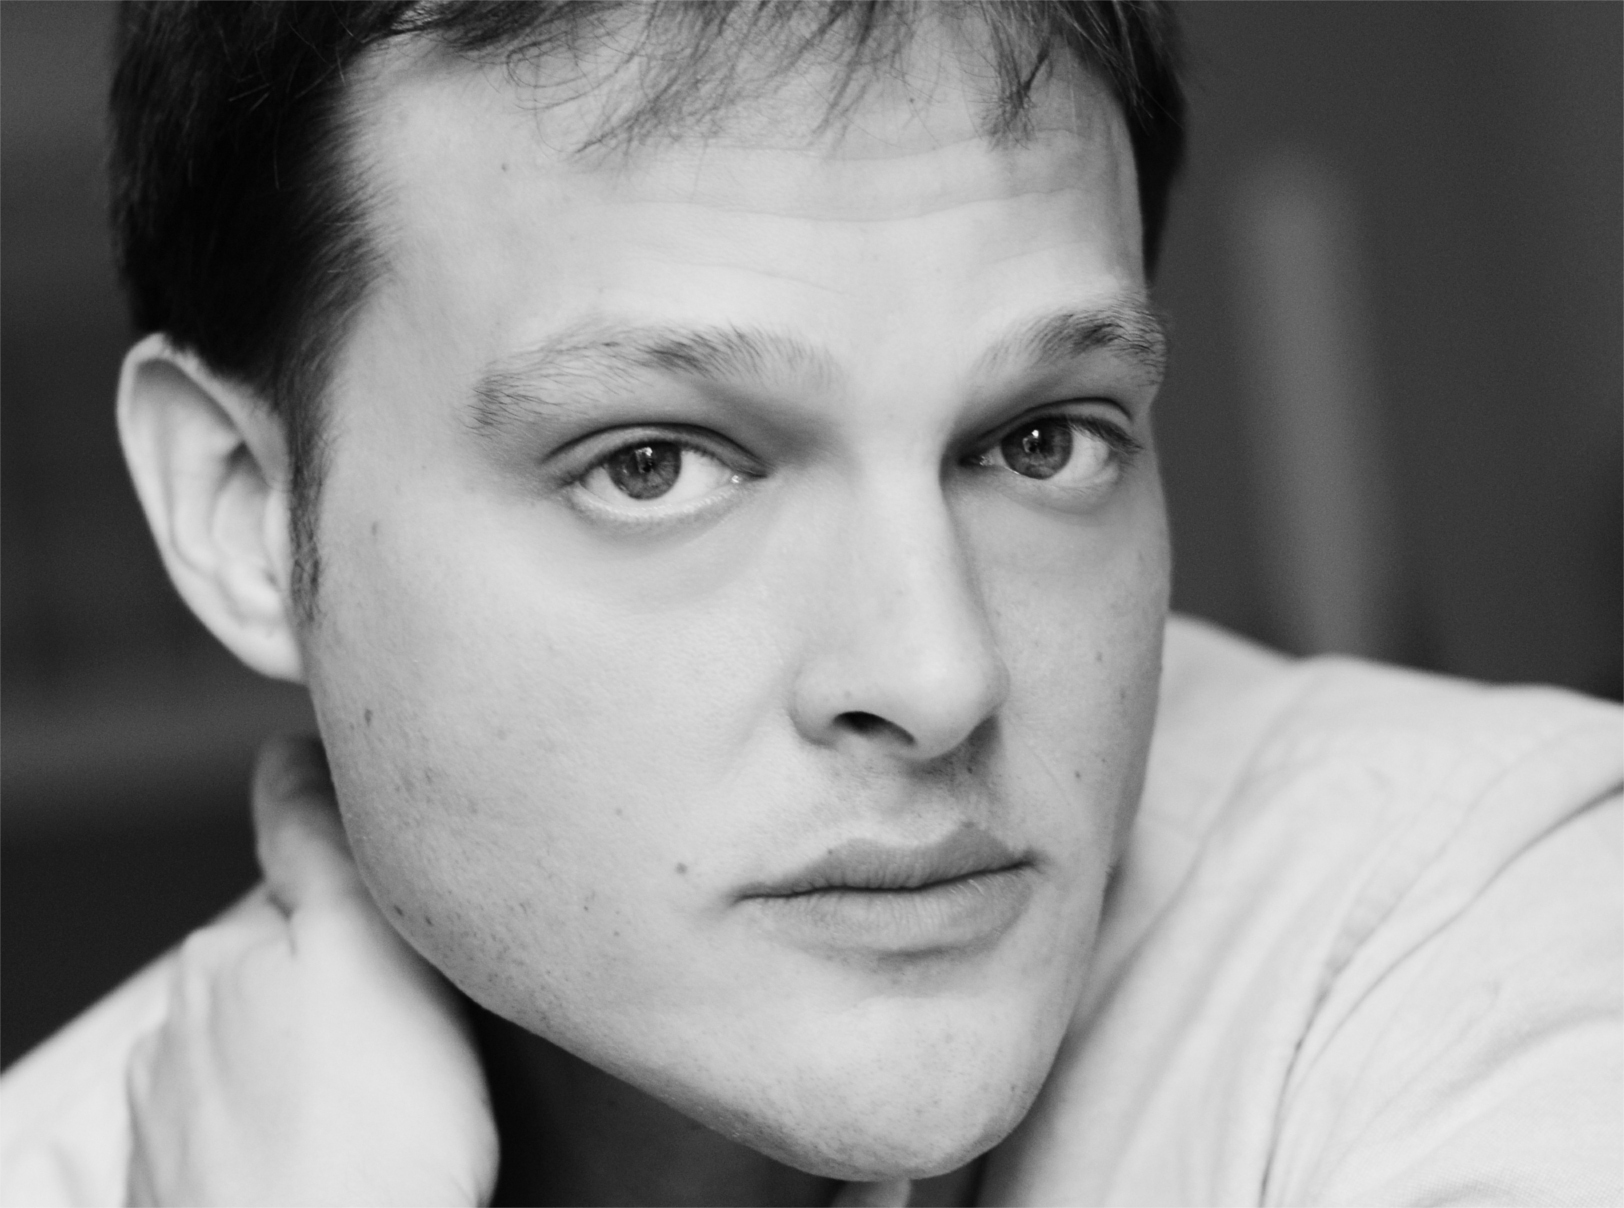 Image of Garth Greenwell with What Belongs to You